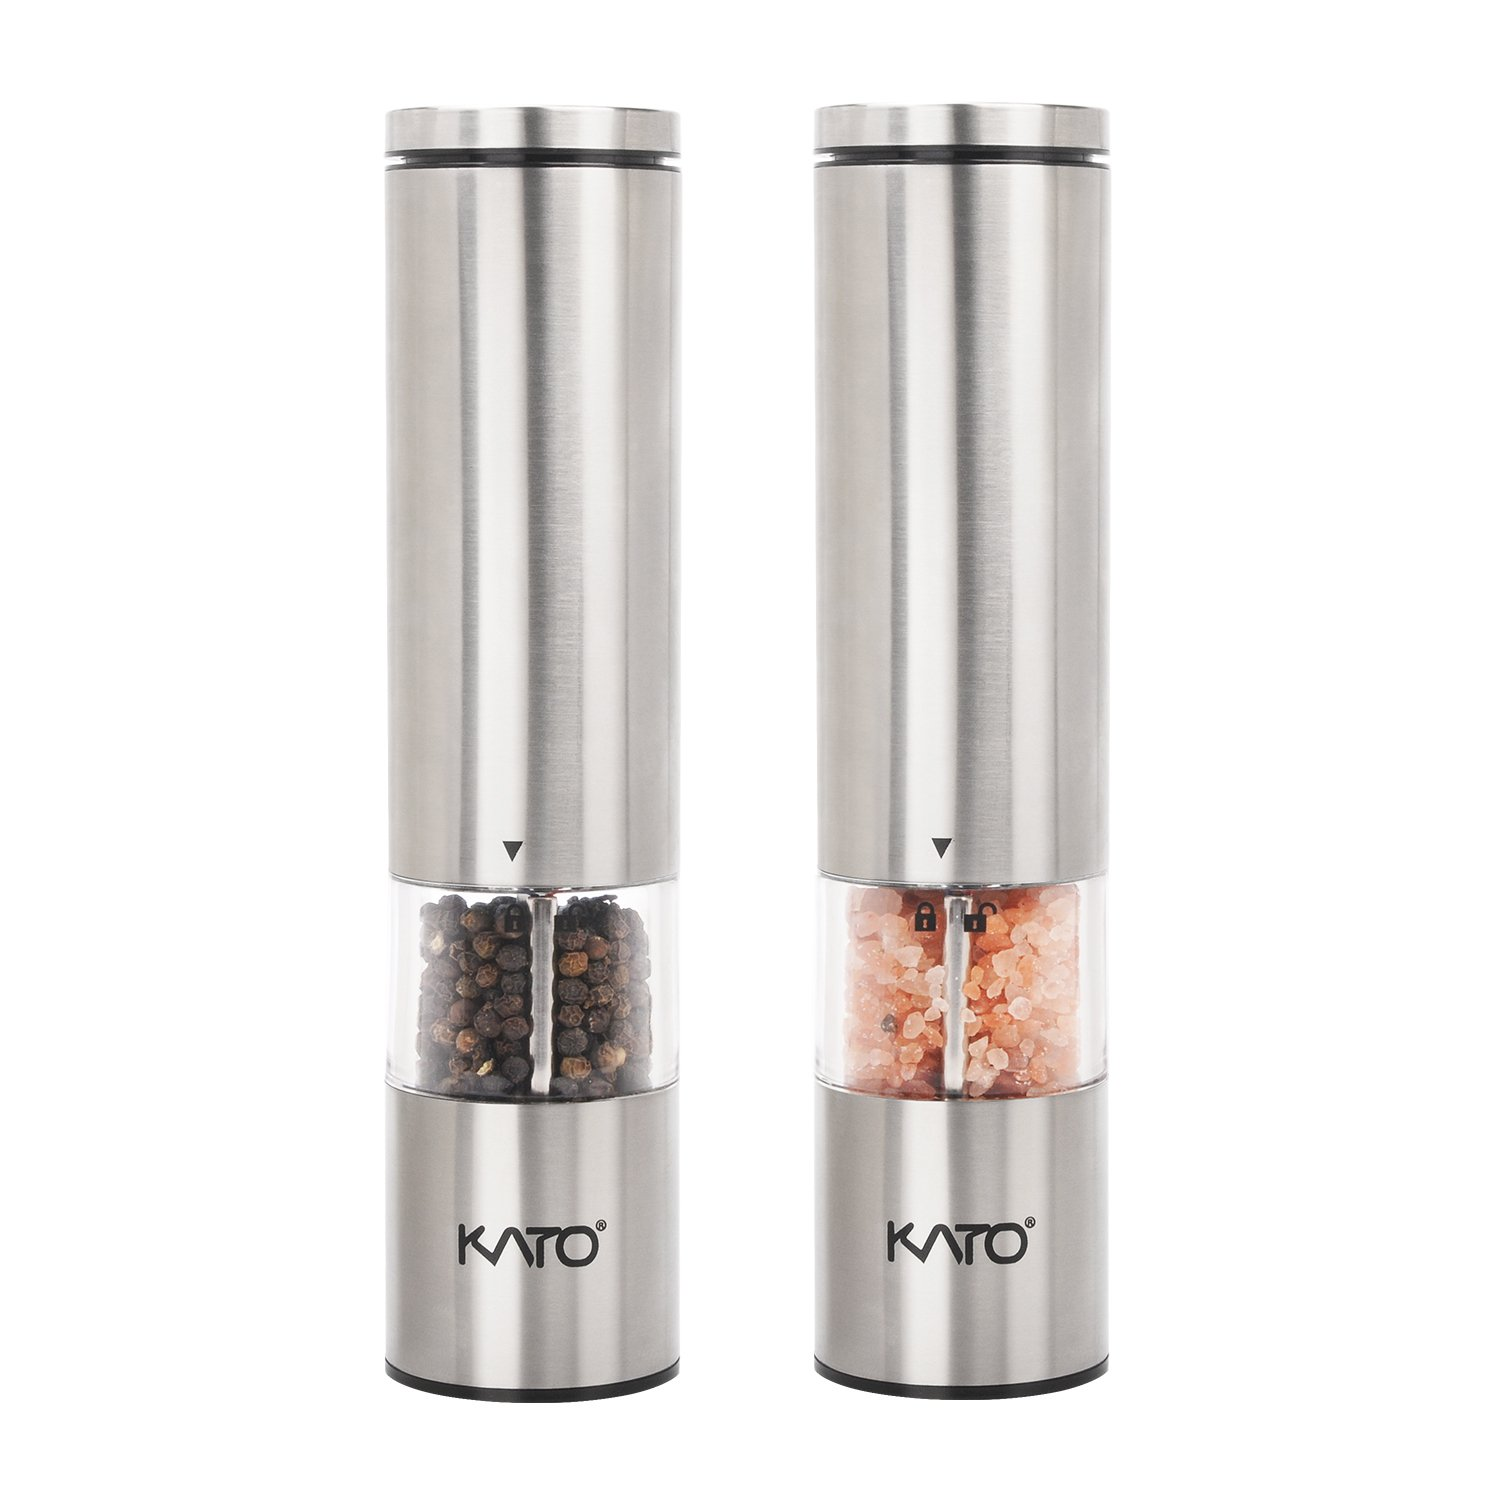 Kato Electric Salt and Pepper Grinder Set with LED Light, Battery Powered, Adjustable Ceramic Coarseness, Stainless Steel Pepper Mill, Pack of 2